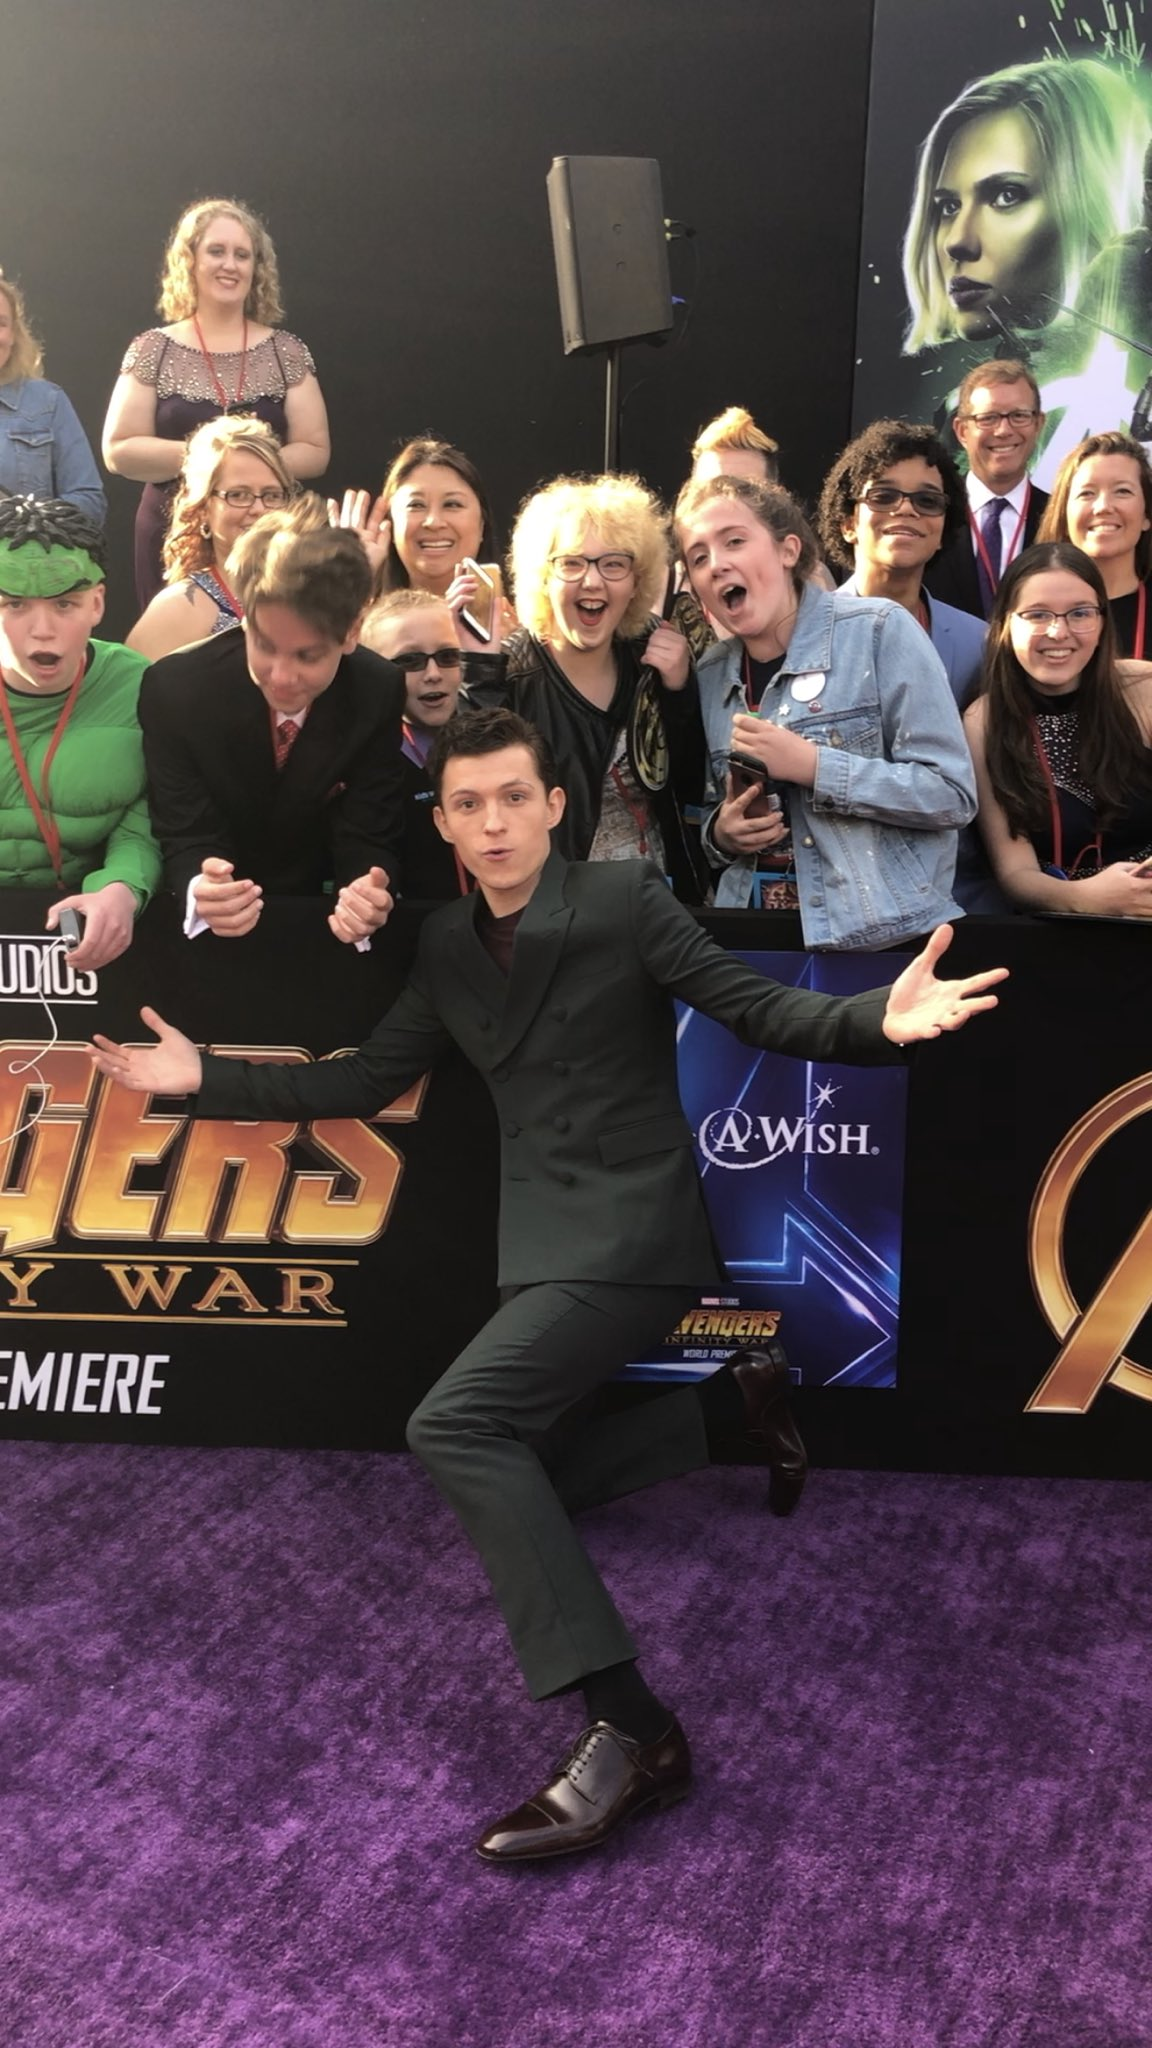 The Spidey Sense is real with @TomHolland1996. #InfinityWar https://t.co/L4iKT2UpSm